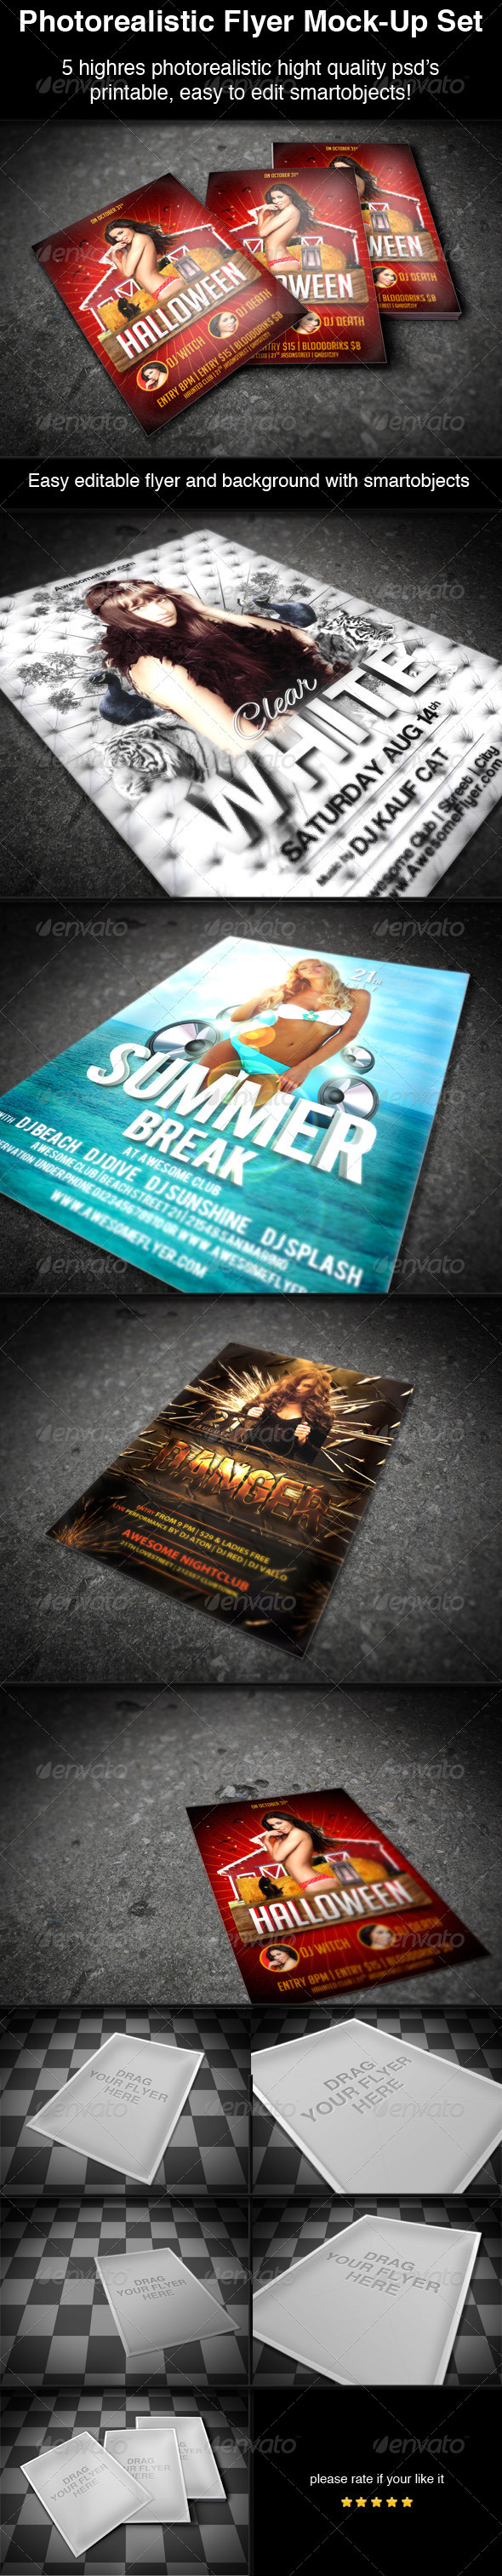 Photorealistic Flyer Poster Mock-Up Set